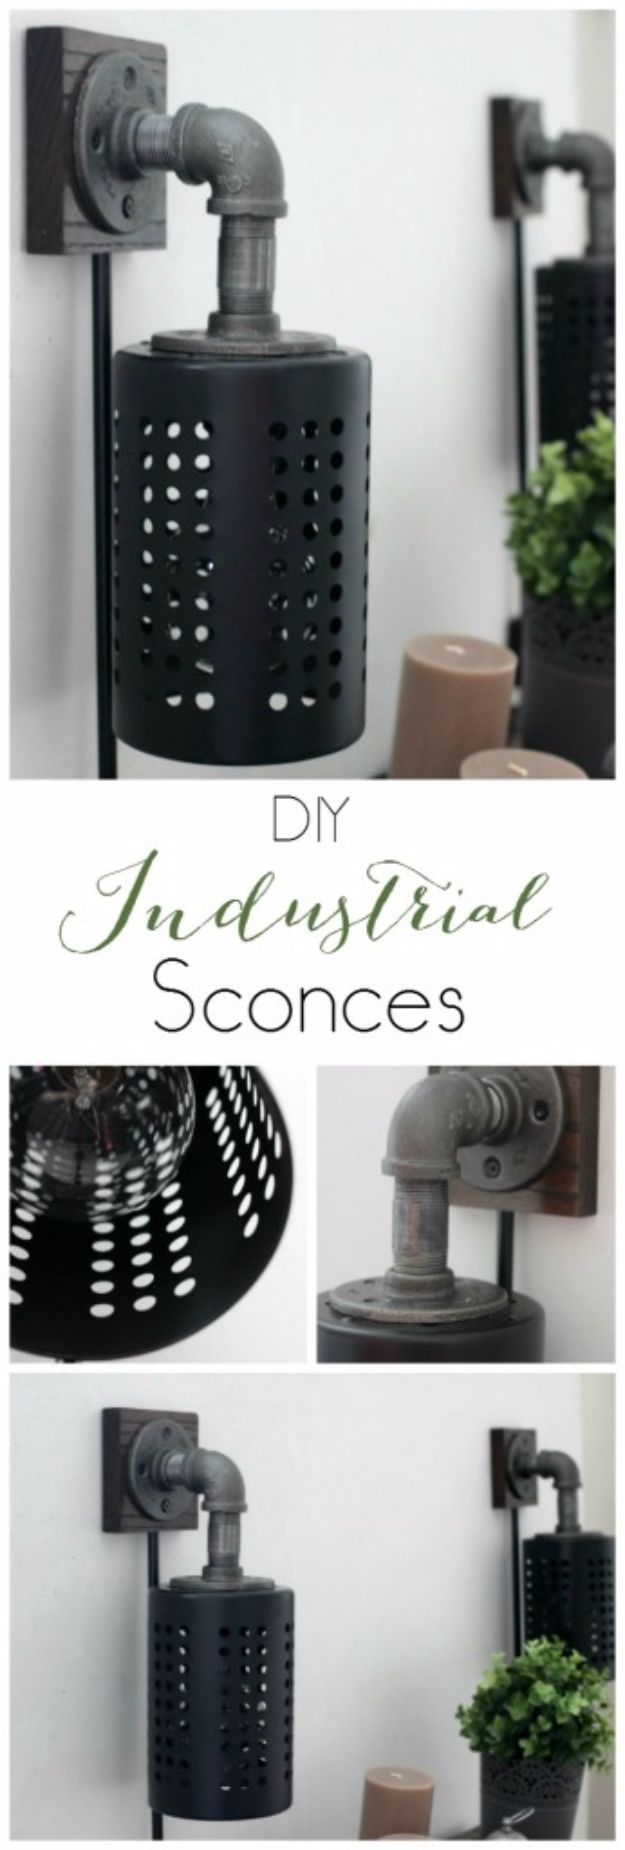 DIY Lighting Ideas and Cool DIY Light Projects for the Home - Make Your Own DIY Industrial Sconces - Easy DIY Ideas for Chandeliers, lights, lamps, awesome pendants and creative hanging fixtures, complete with tutorials with instructions. Cheap do it yourself lighting tutorials for indoor - bedroom, living room, bathroom, kitchen DIY Projects and Crafts for Women and Men